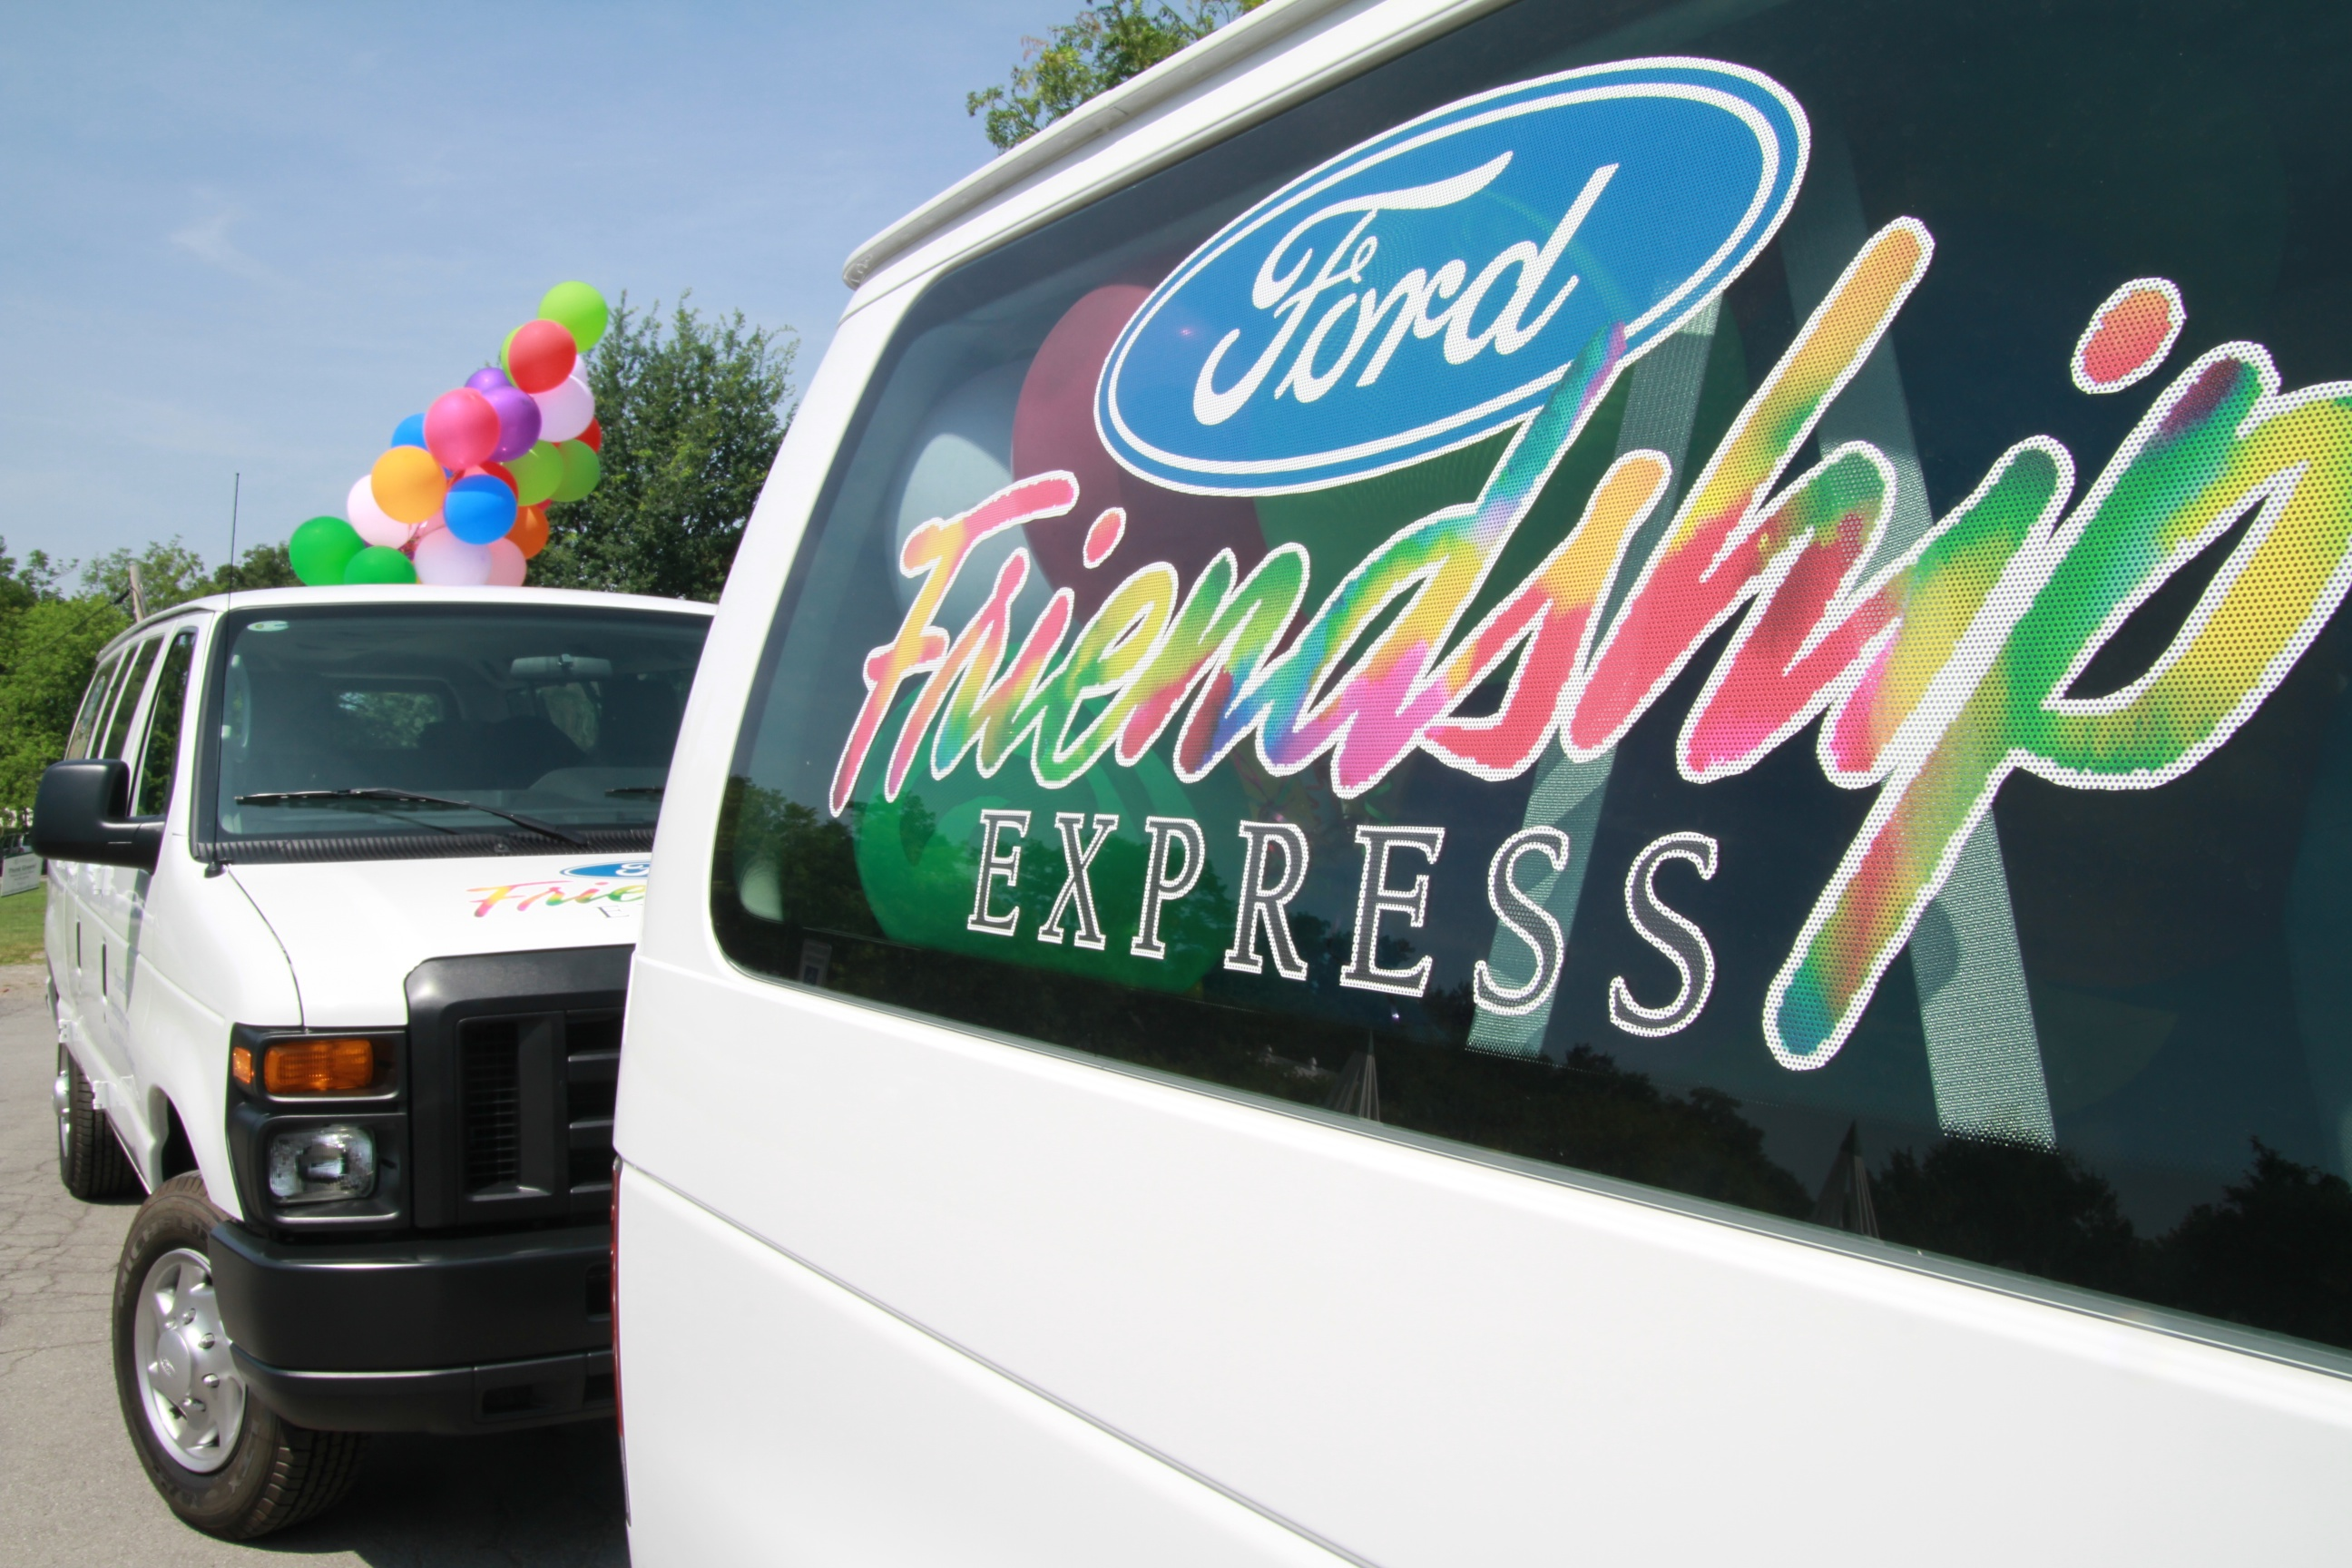 The Rochester Area Ford Dealers will announce the 2012 Ford Friendship Express van recipient during the Rochester International Auto Show in early March.